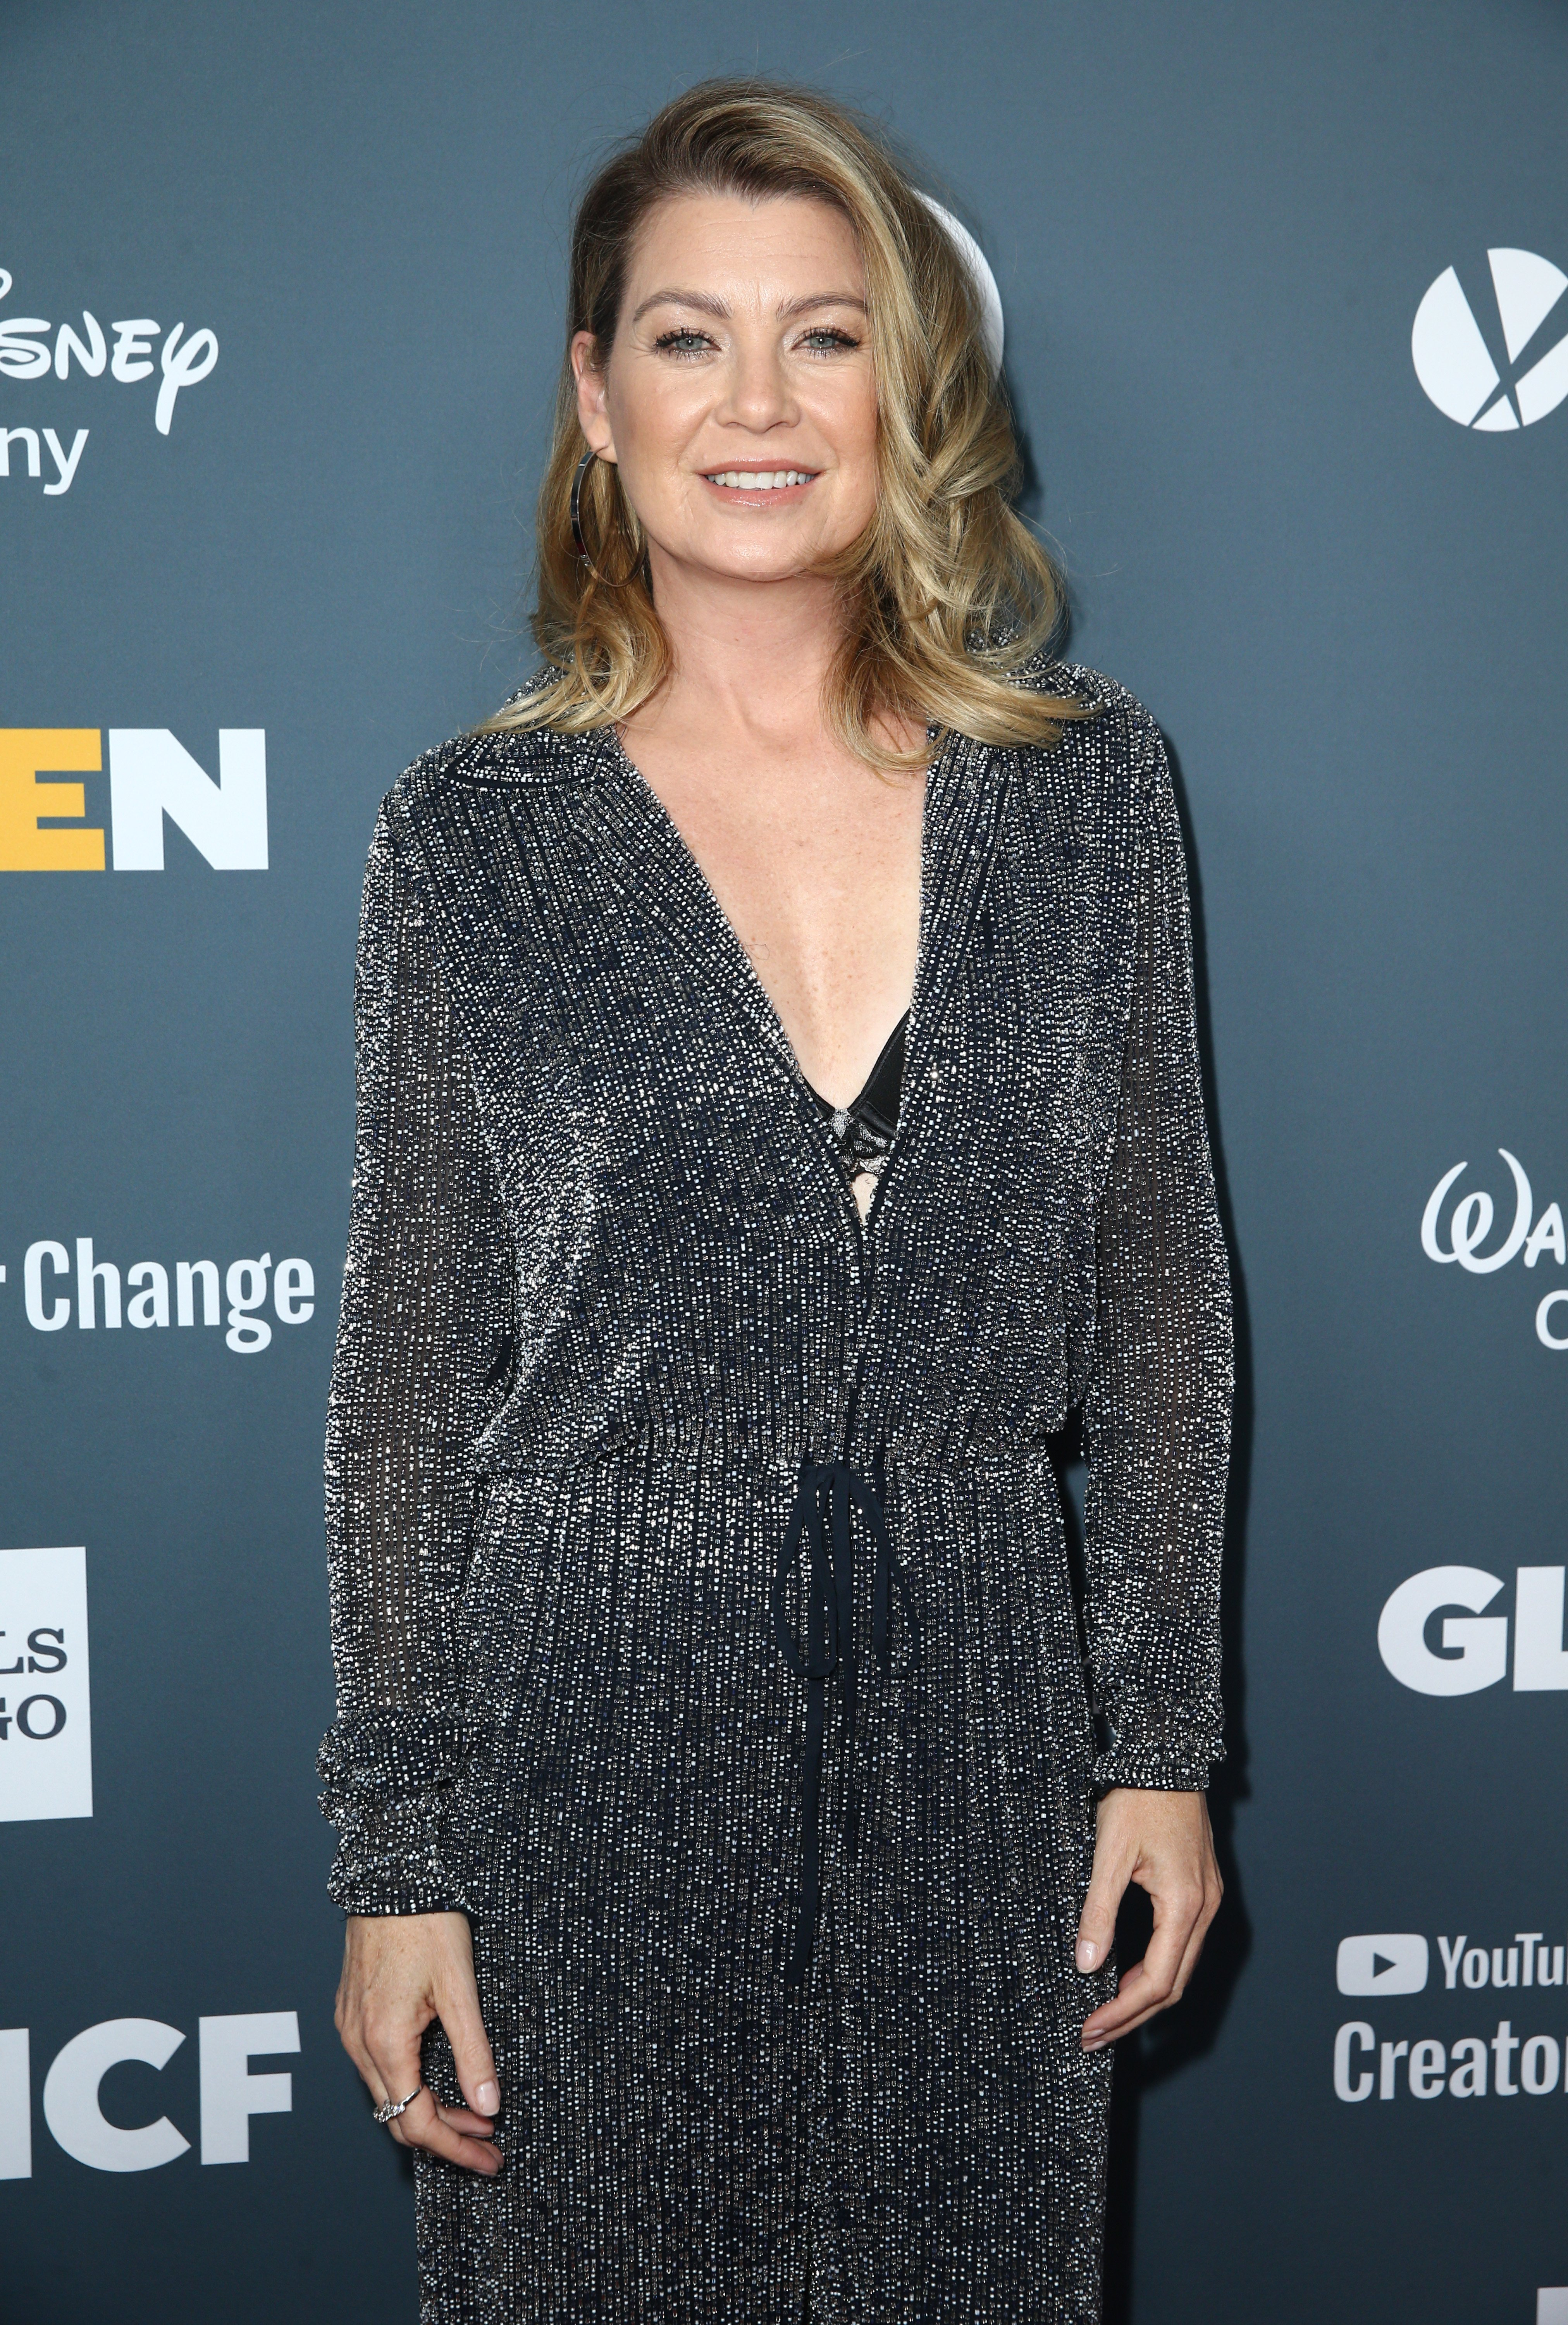 Ellen Pompeo attends the GLSEN Respect Awards at the Four Season Hotel in Beverly Hills on October 19, 2018 | Photo: Getty Images